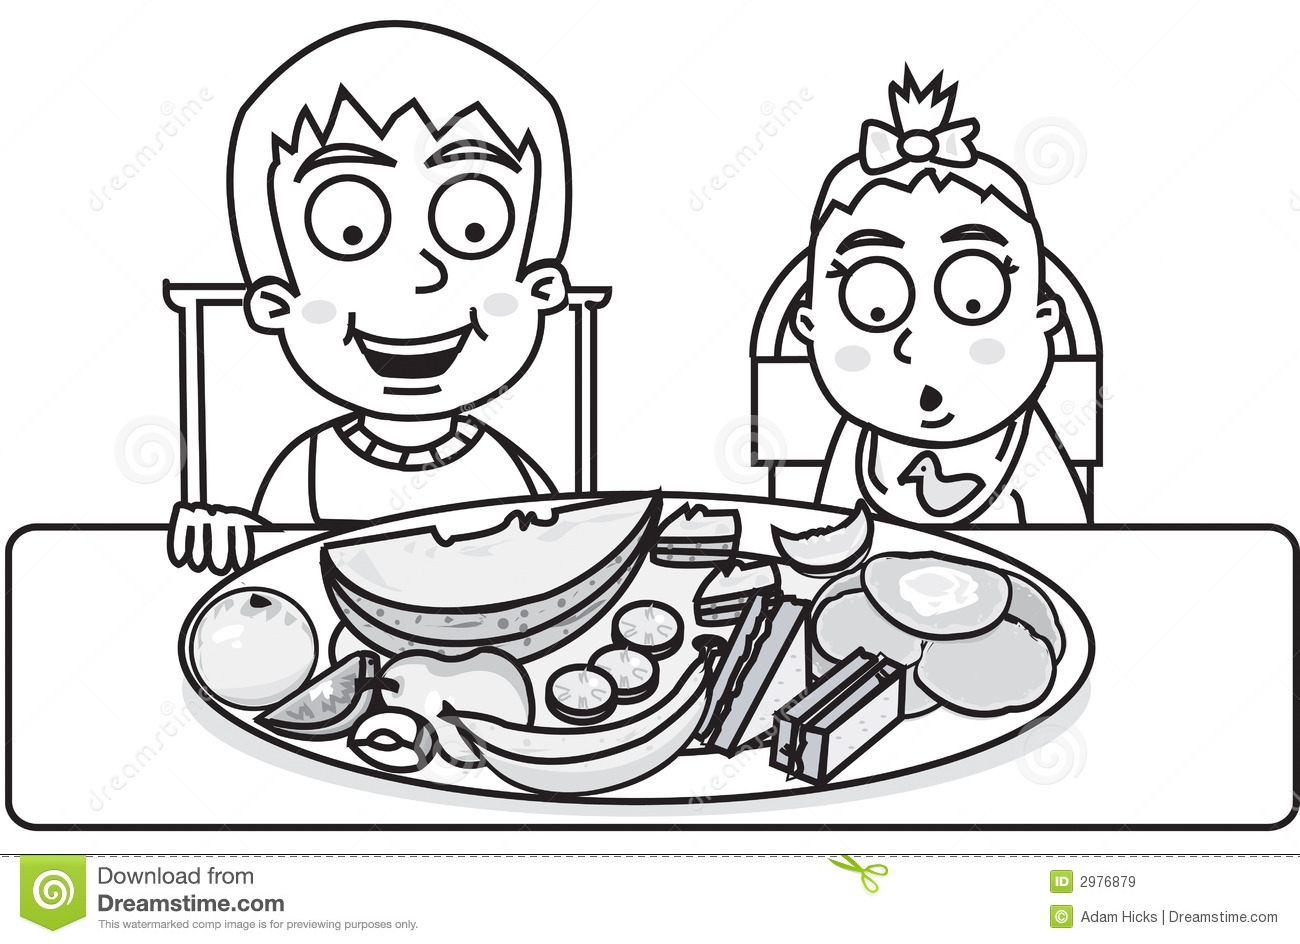 2020 Other | Images: Child Eating Clipart Black And White